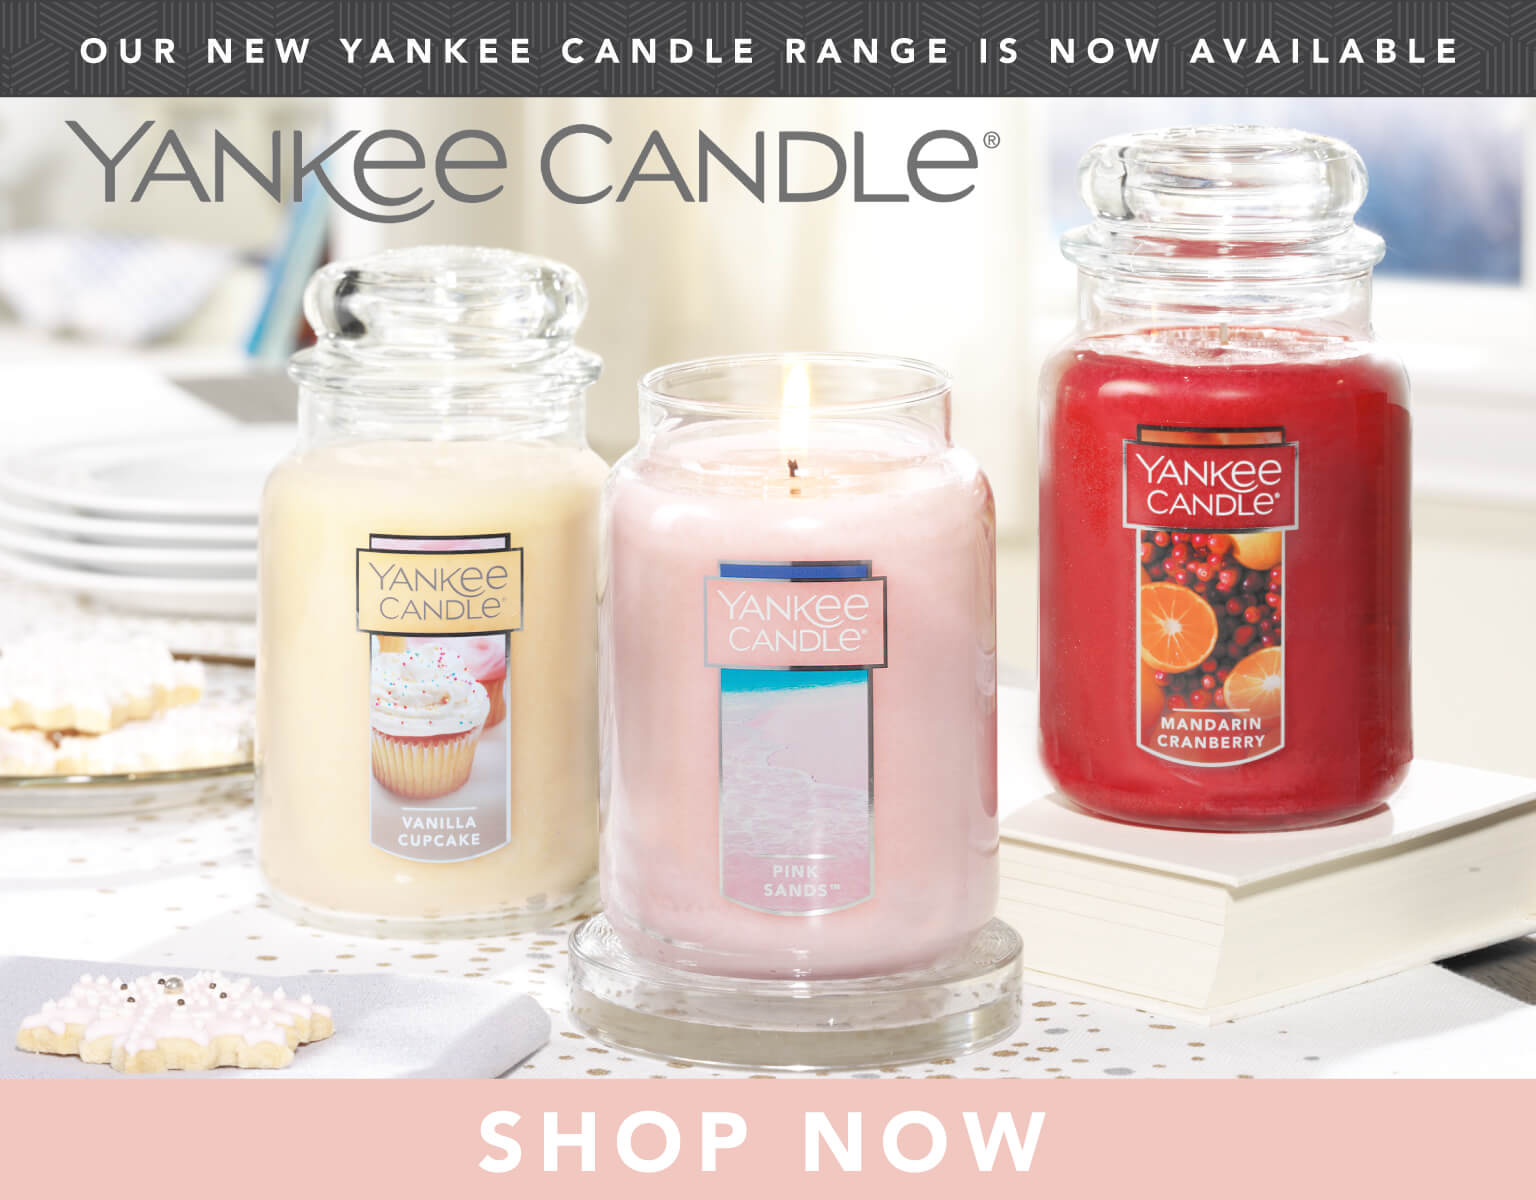 Yankee Candle now available!